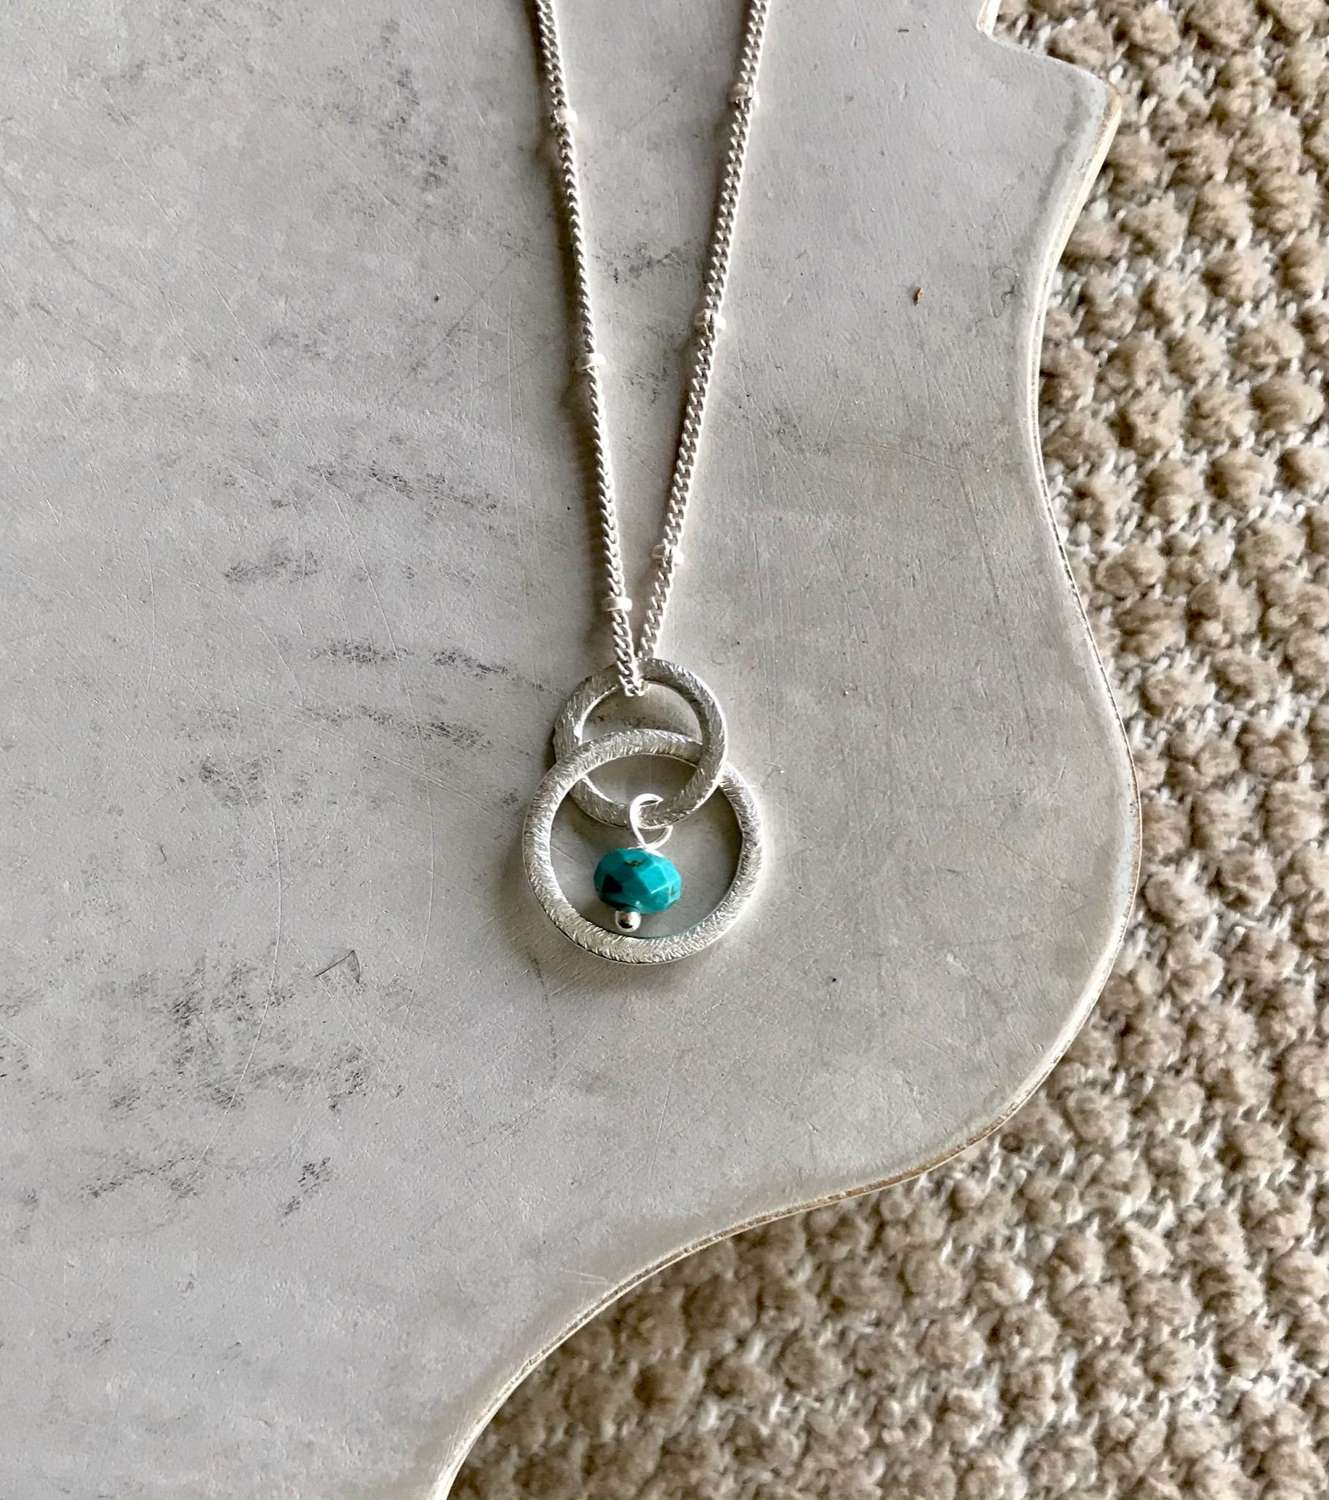 Lesley necklace - turquoise/silver